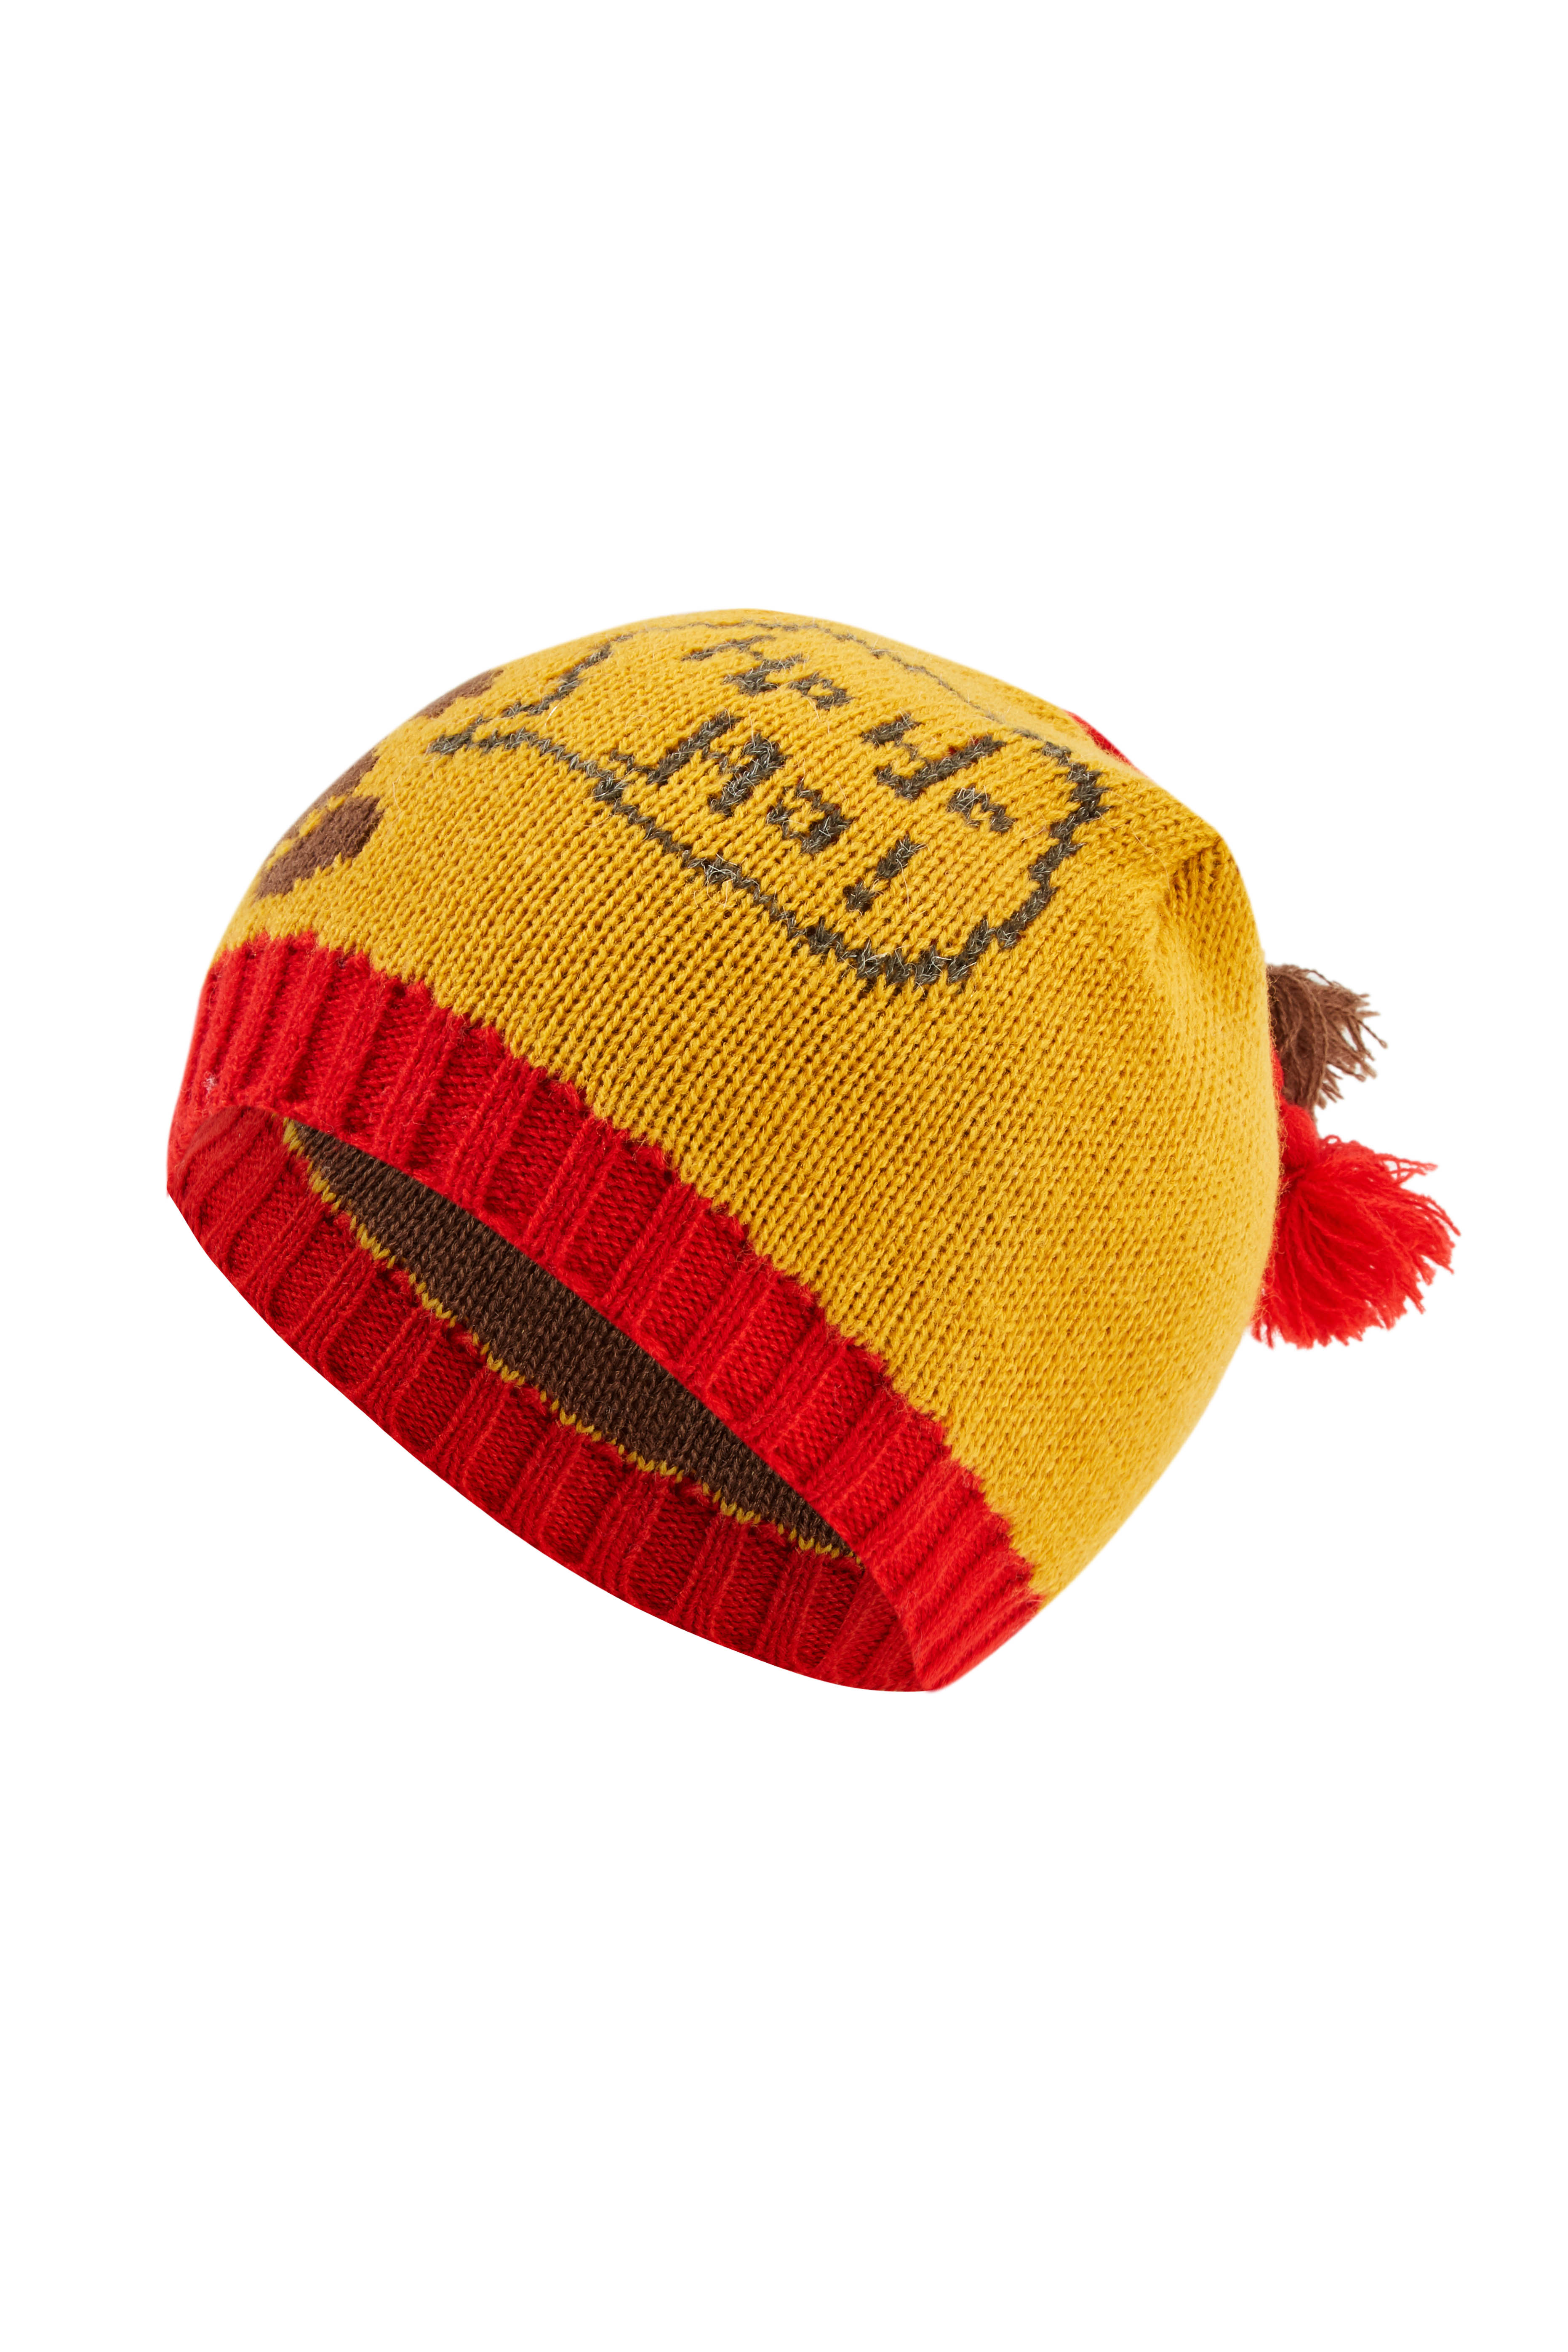 Kids' Christmas Cute Hat Jacquard Beanie Cap